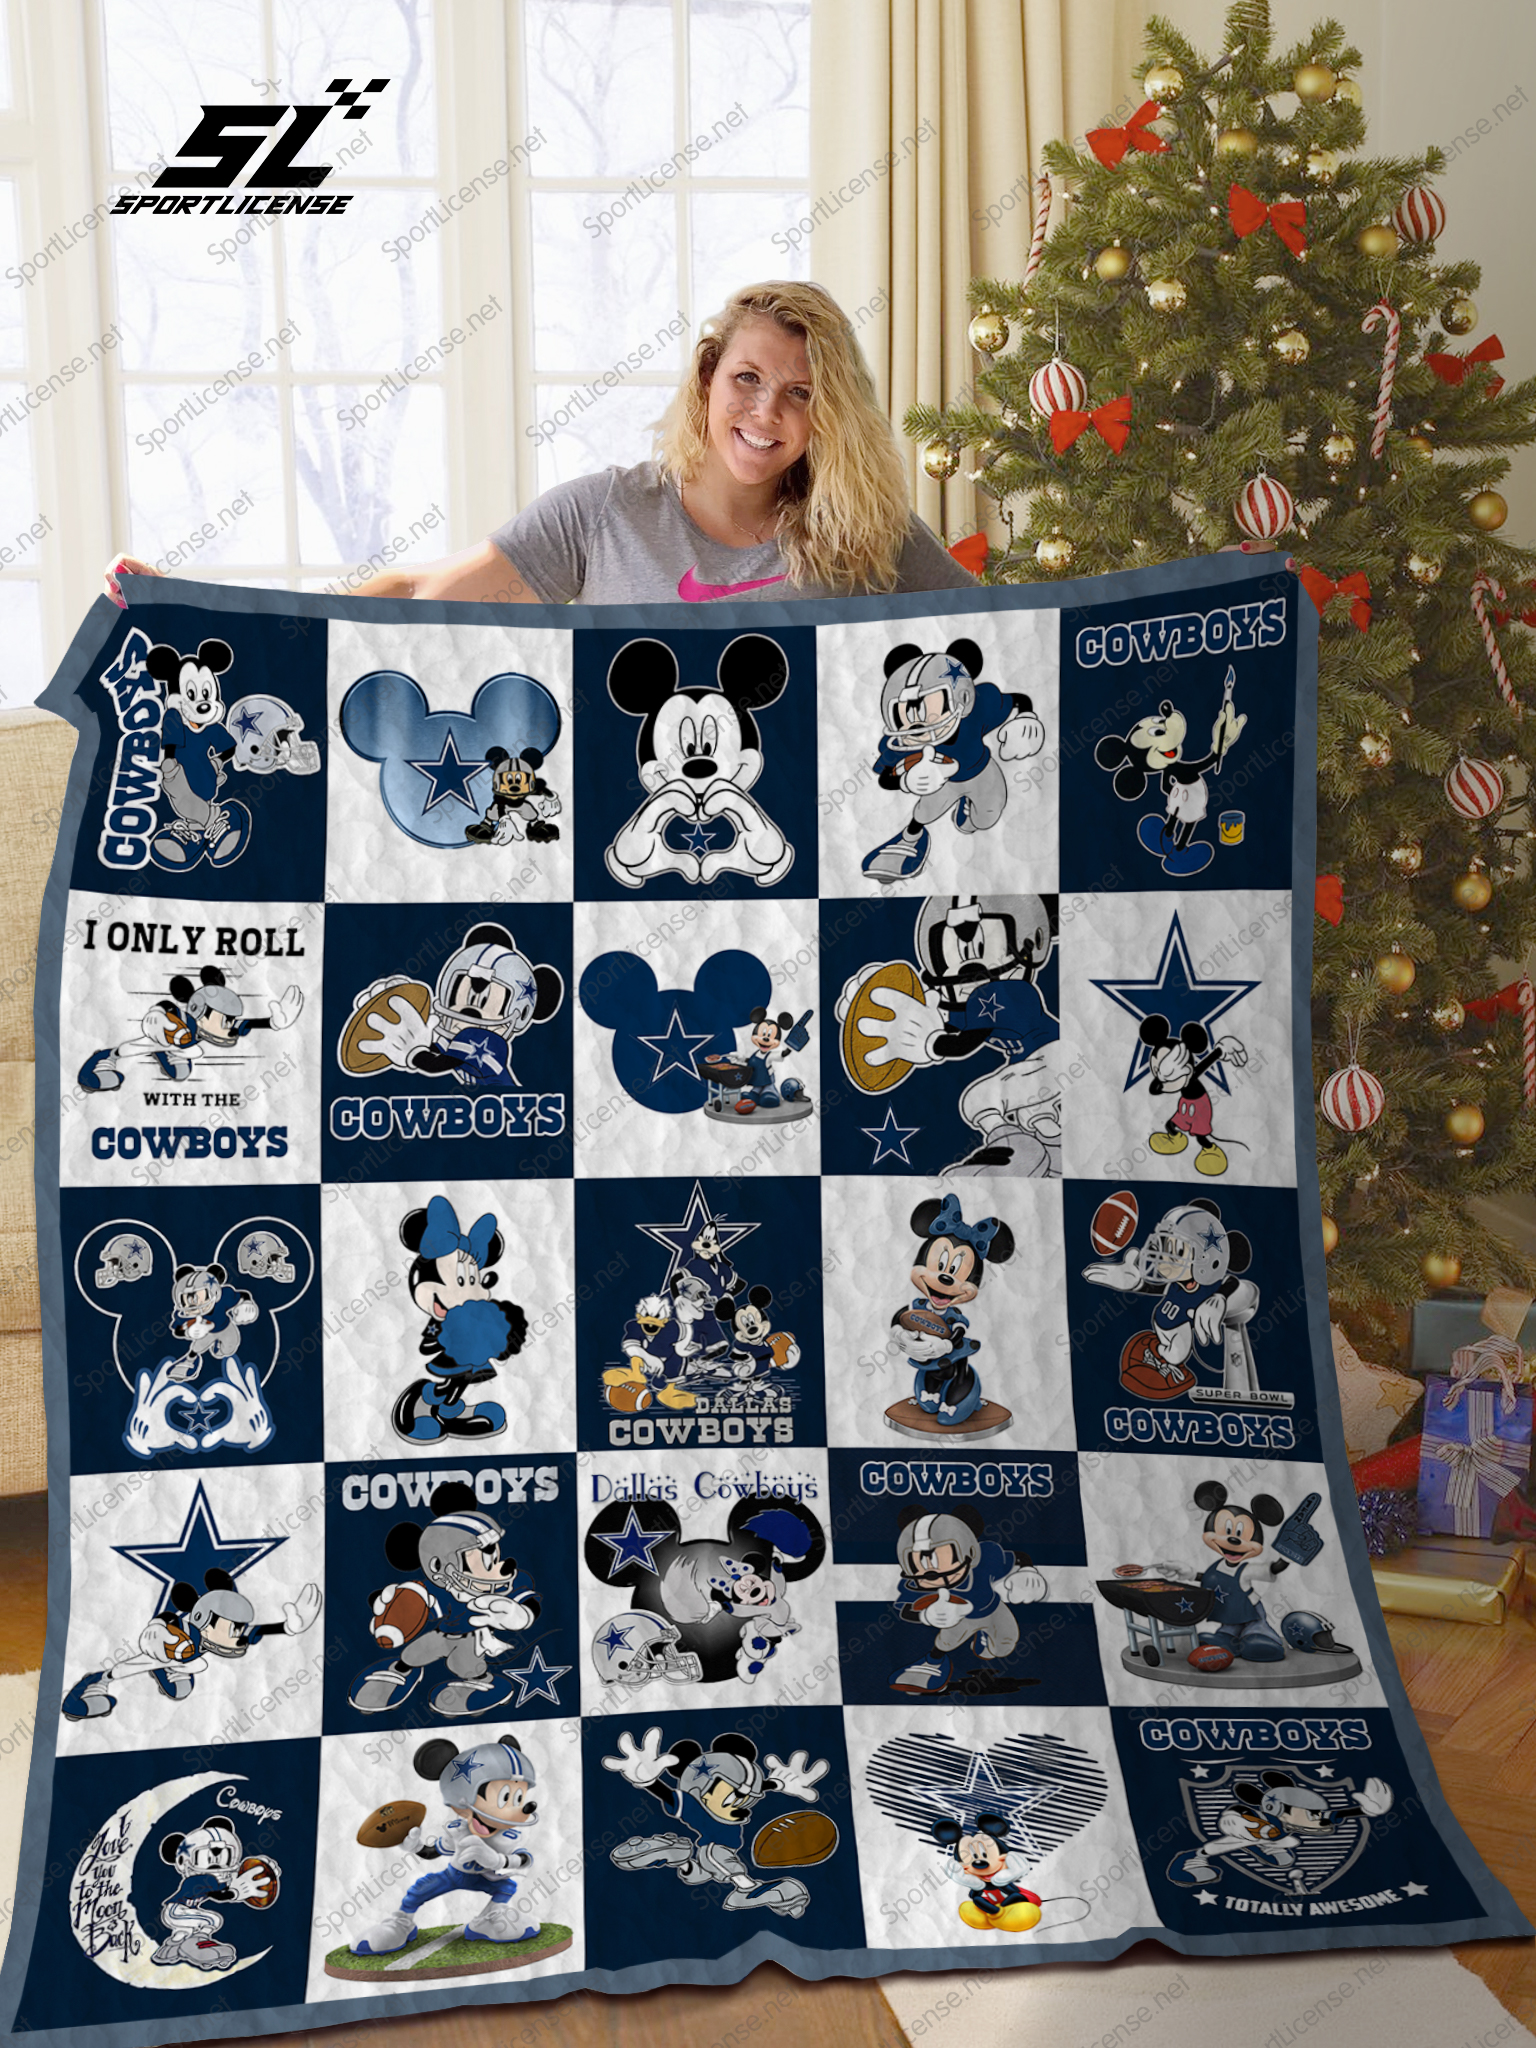 Mickey mouse dallas cowboys nfl quilt